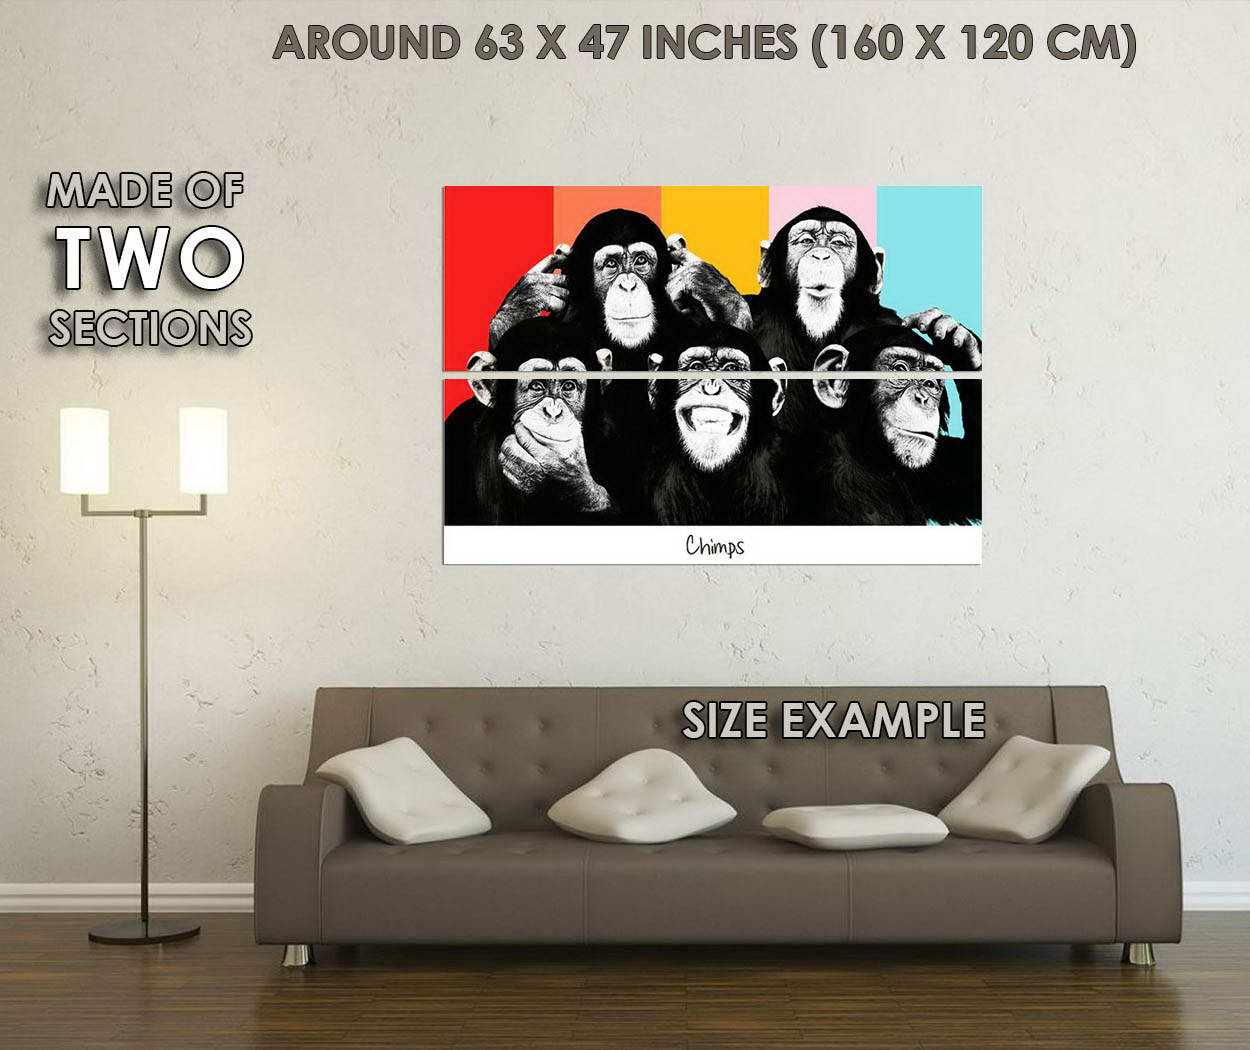 10066-The-Chimps-Funny-Monkey-Face-LAMINATED-POSTER-CA thumbnail 6